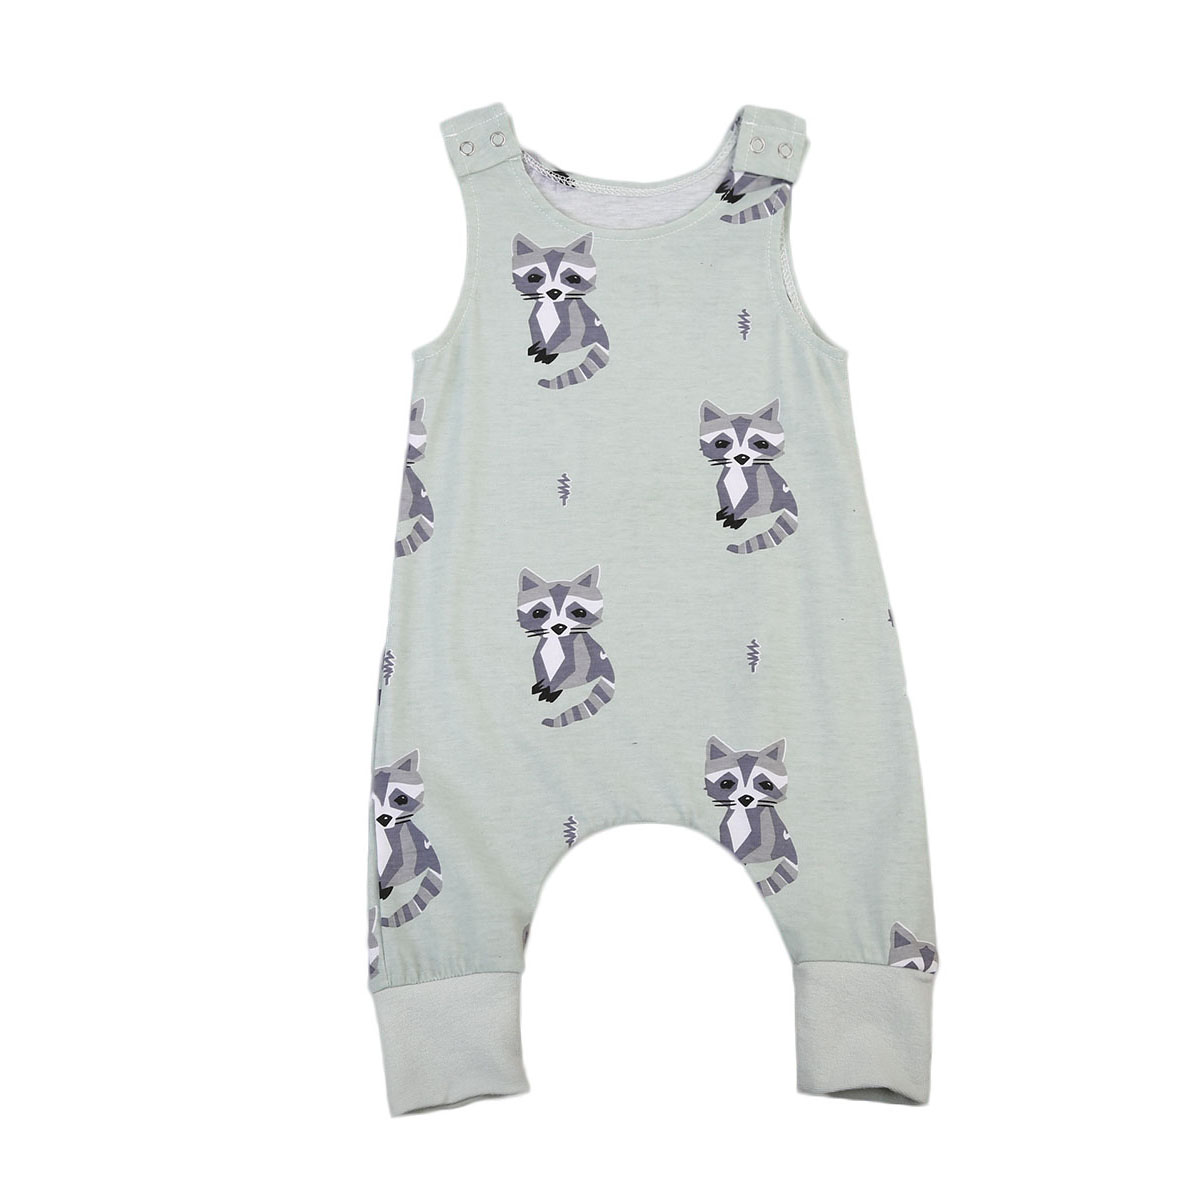 Pudcoco Newborn Baby Infant Tank Rompers Fox Pattern Sleeveless Romper For Baby Girls Summer Cloth